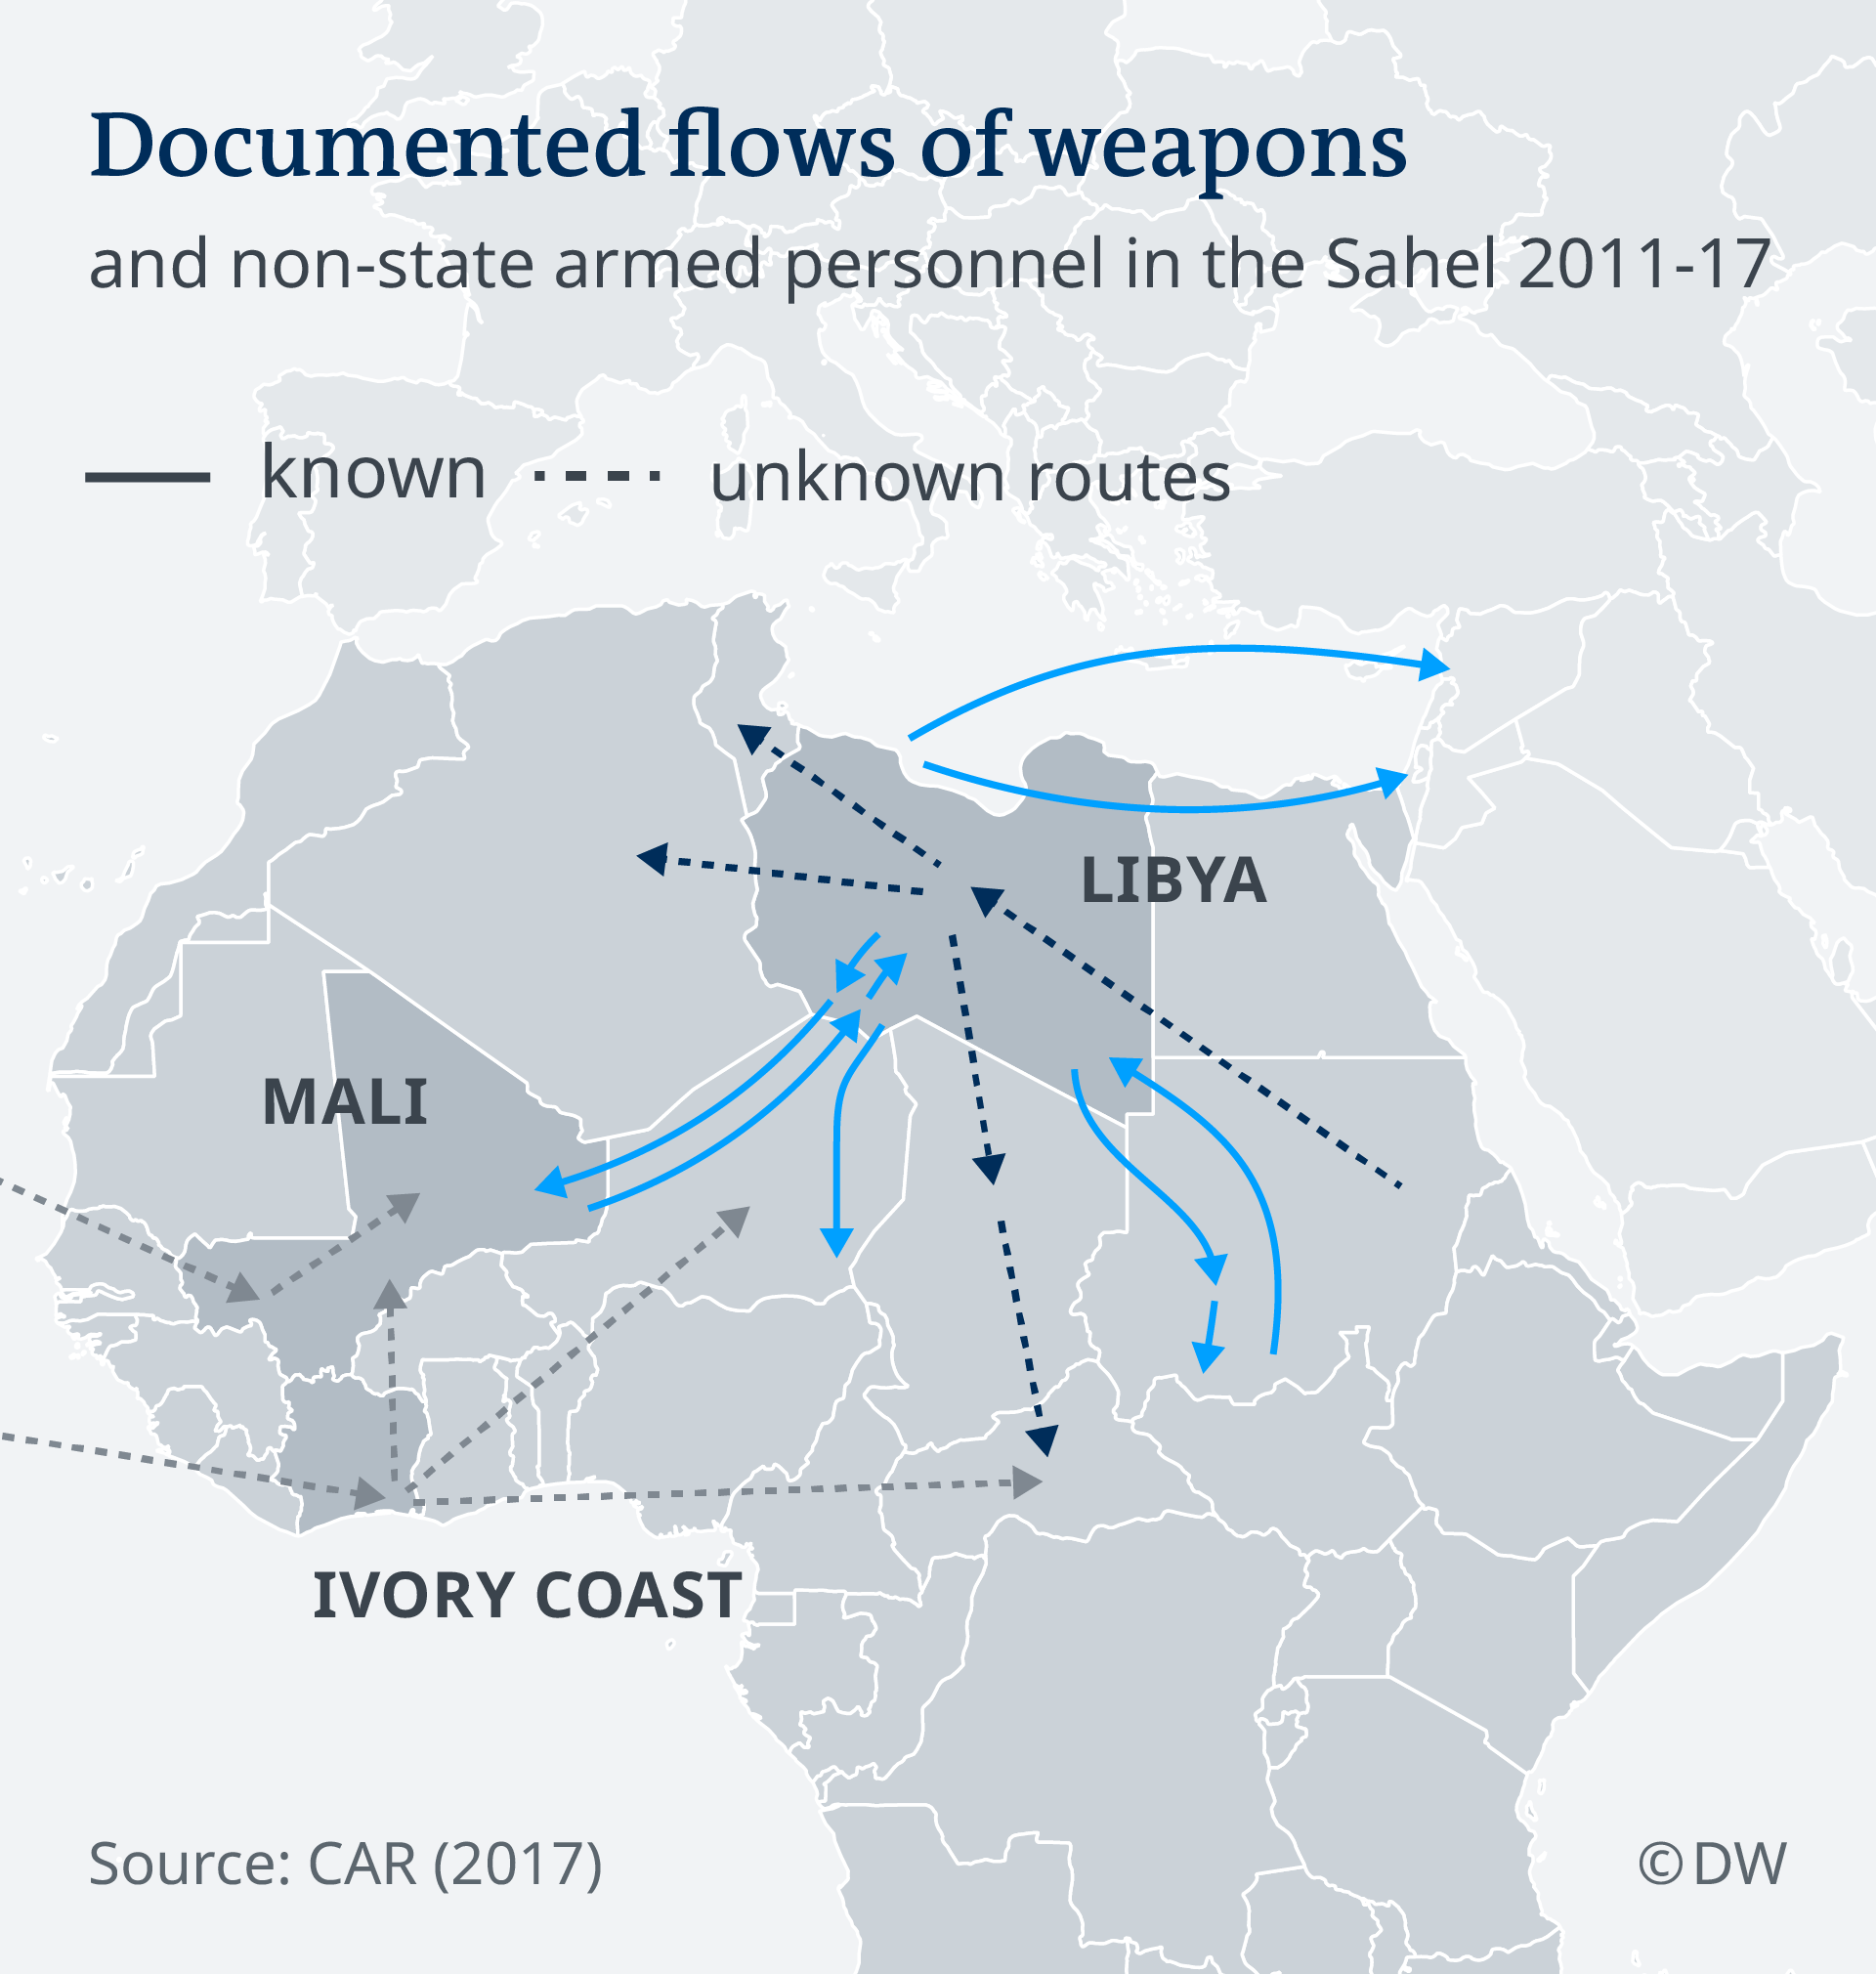 An infographic showing the documented flows of weapons across the Sahel in Africa